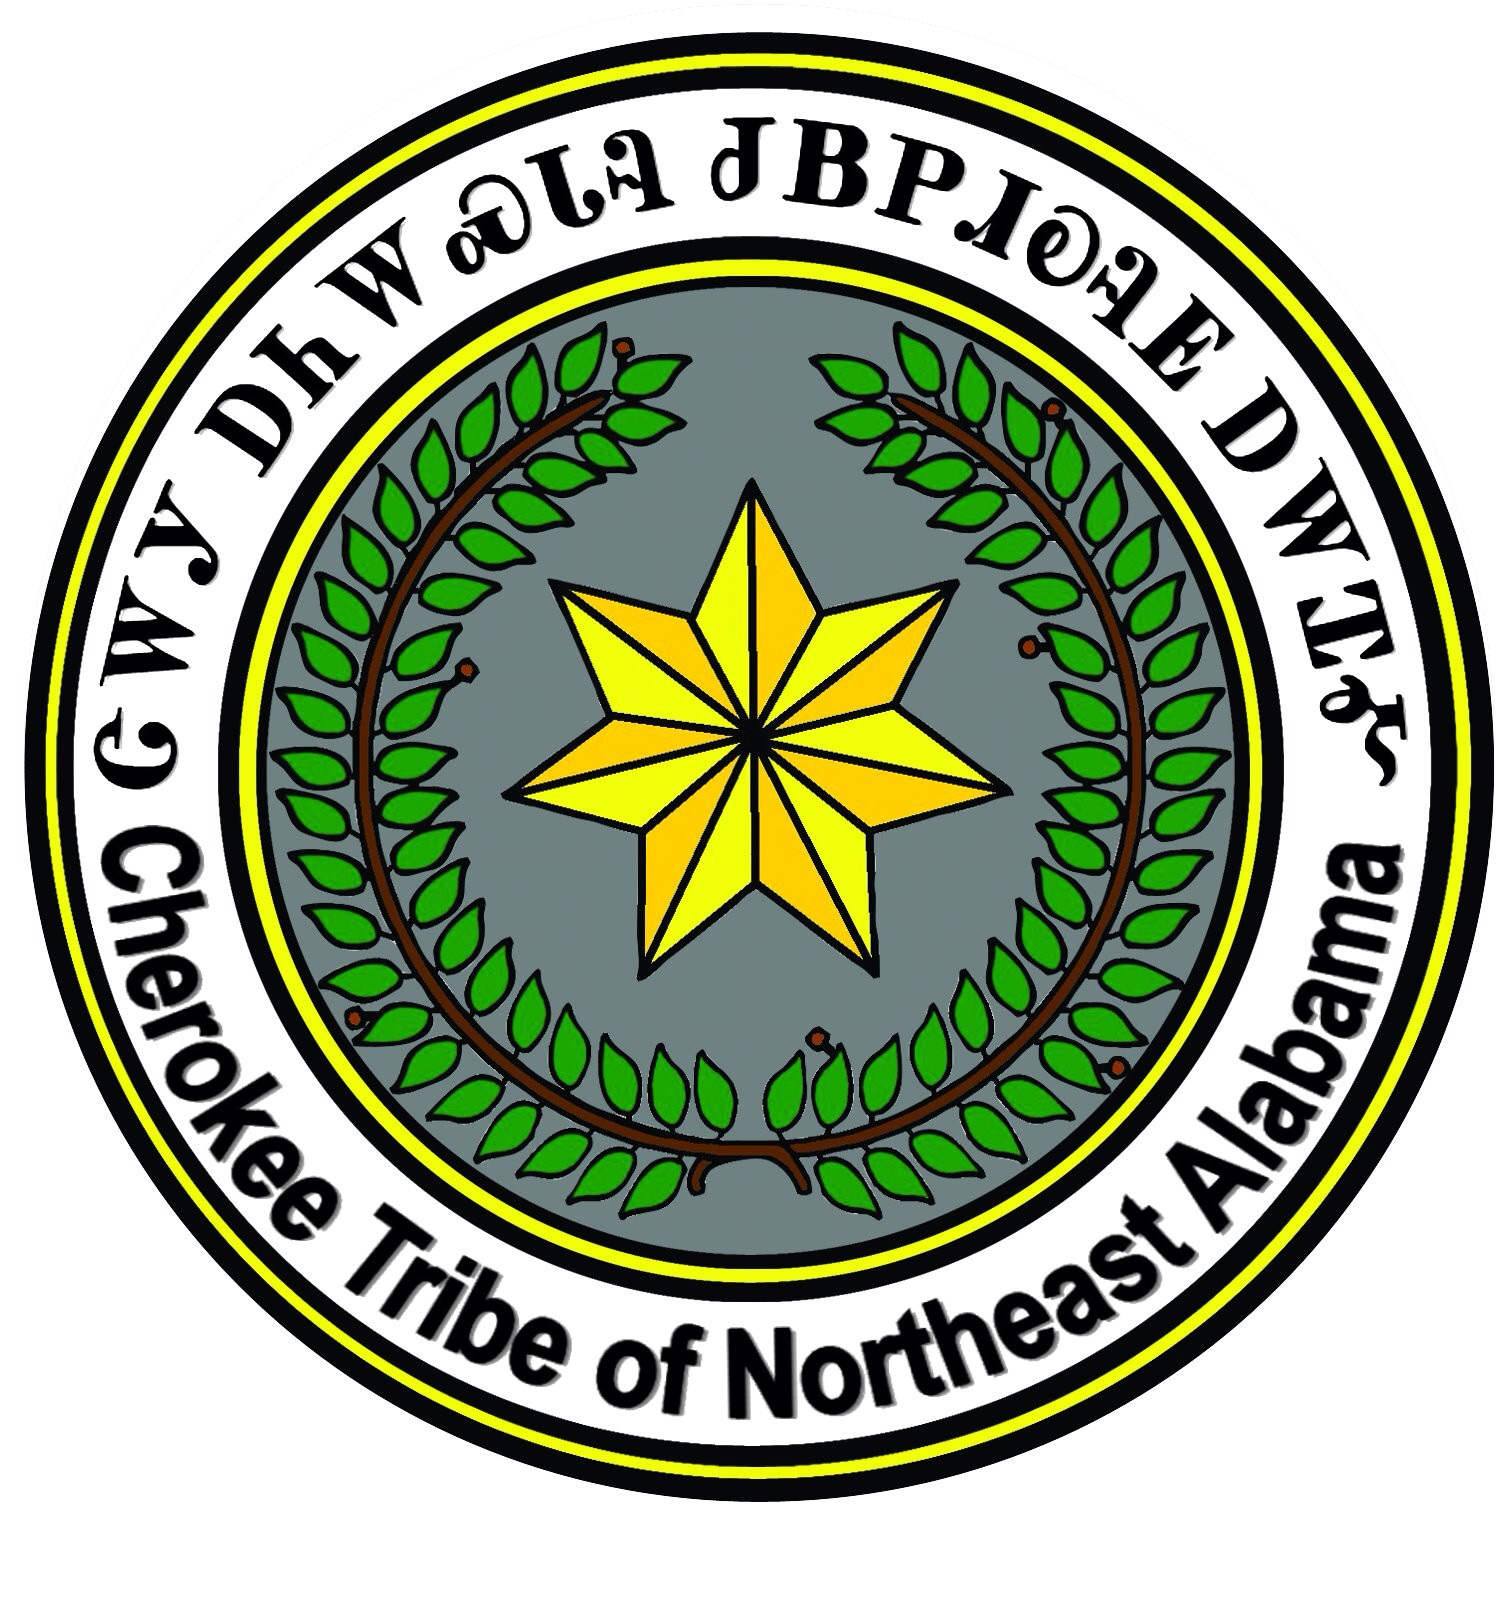 cherokee tribe Siyo and welcome to the official website of the united keetoowah band of  cherokee indians in oklahoma we invite you to take a look around and find out  who.